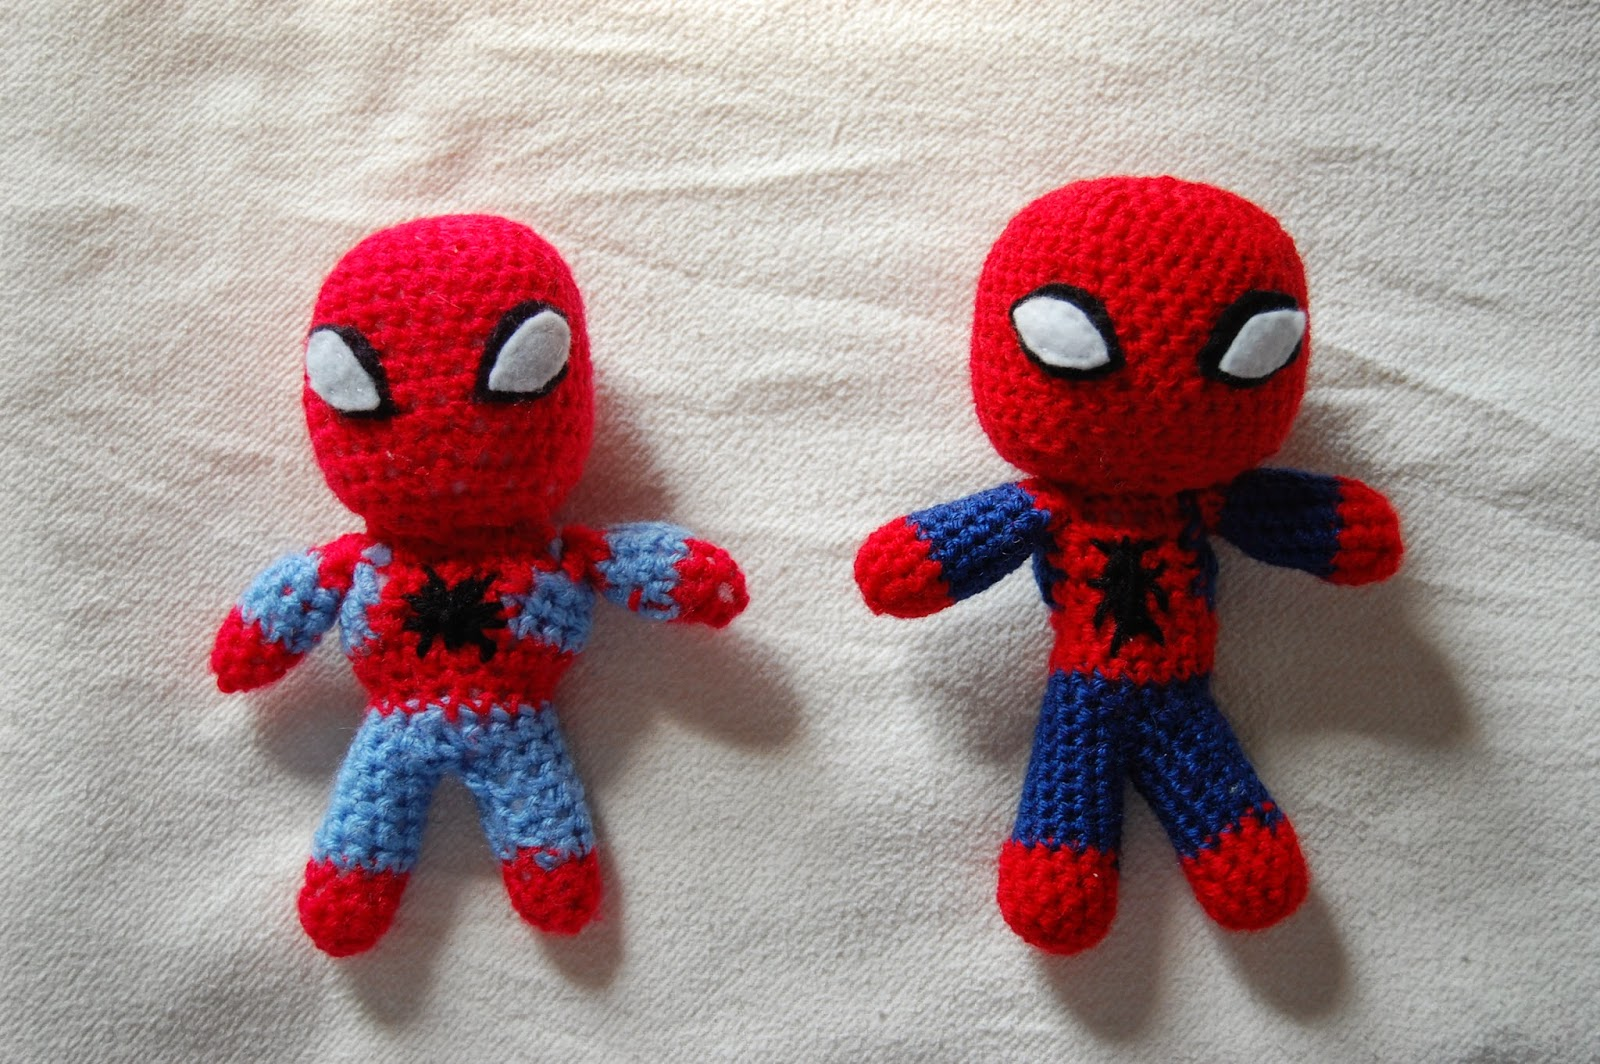 the geeky knitter: ongoing projects 4; spiderman crochet pattern